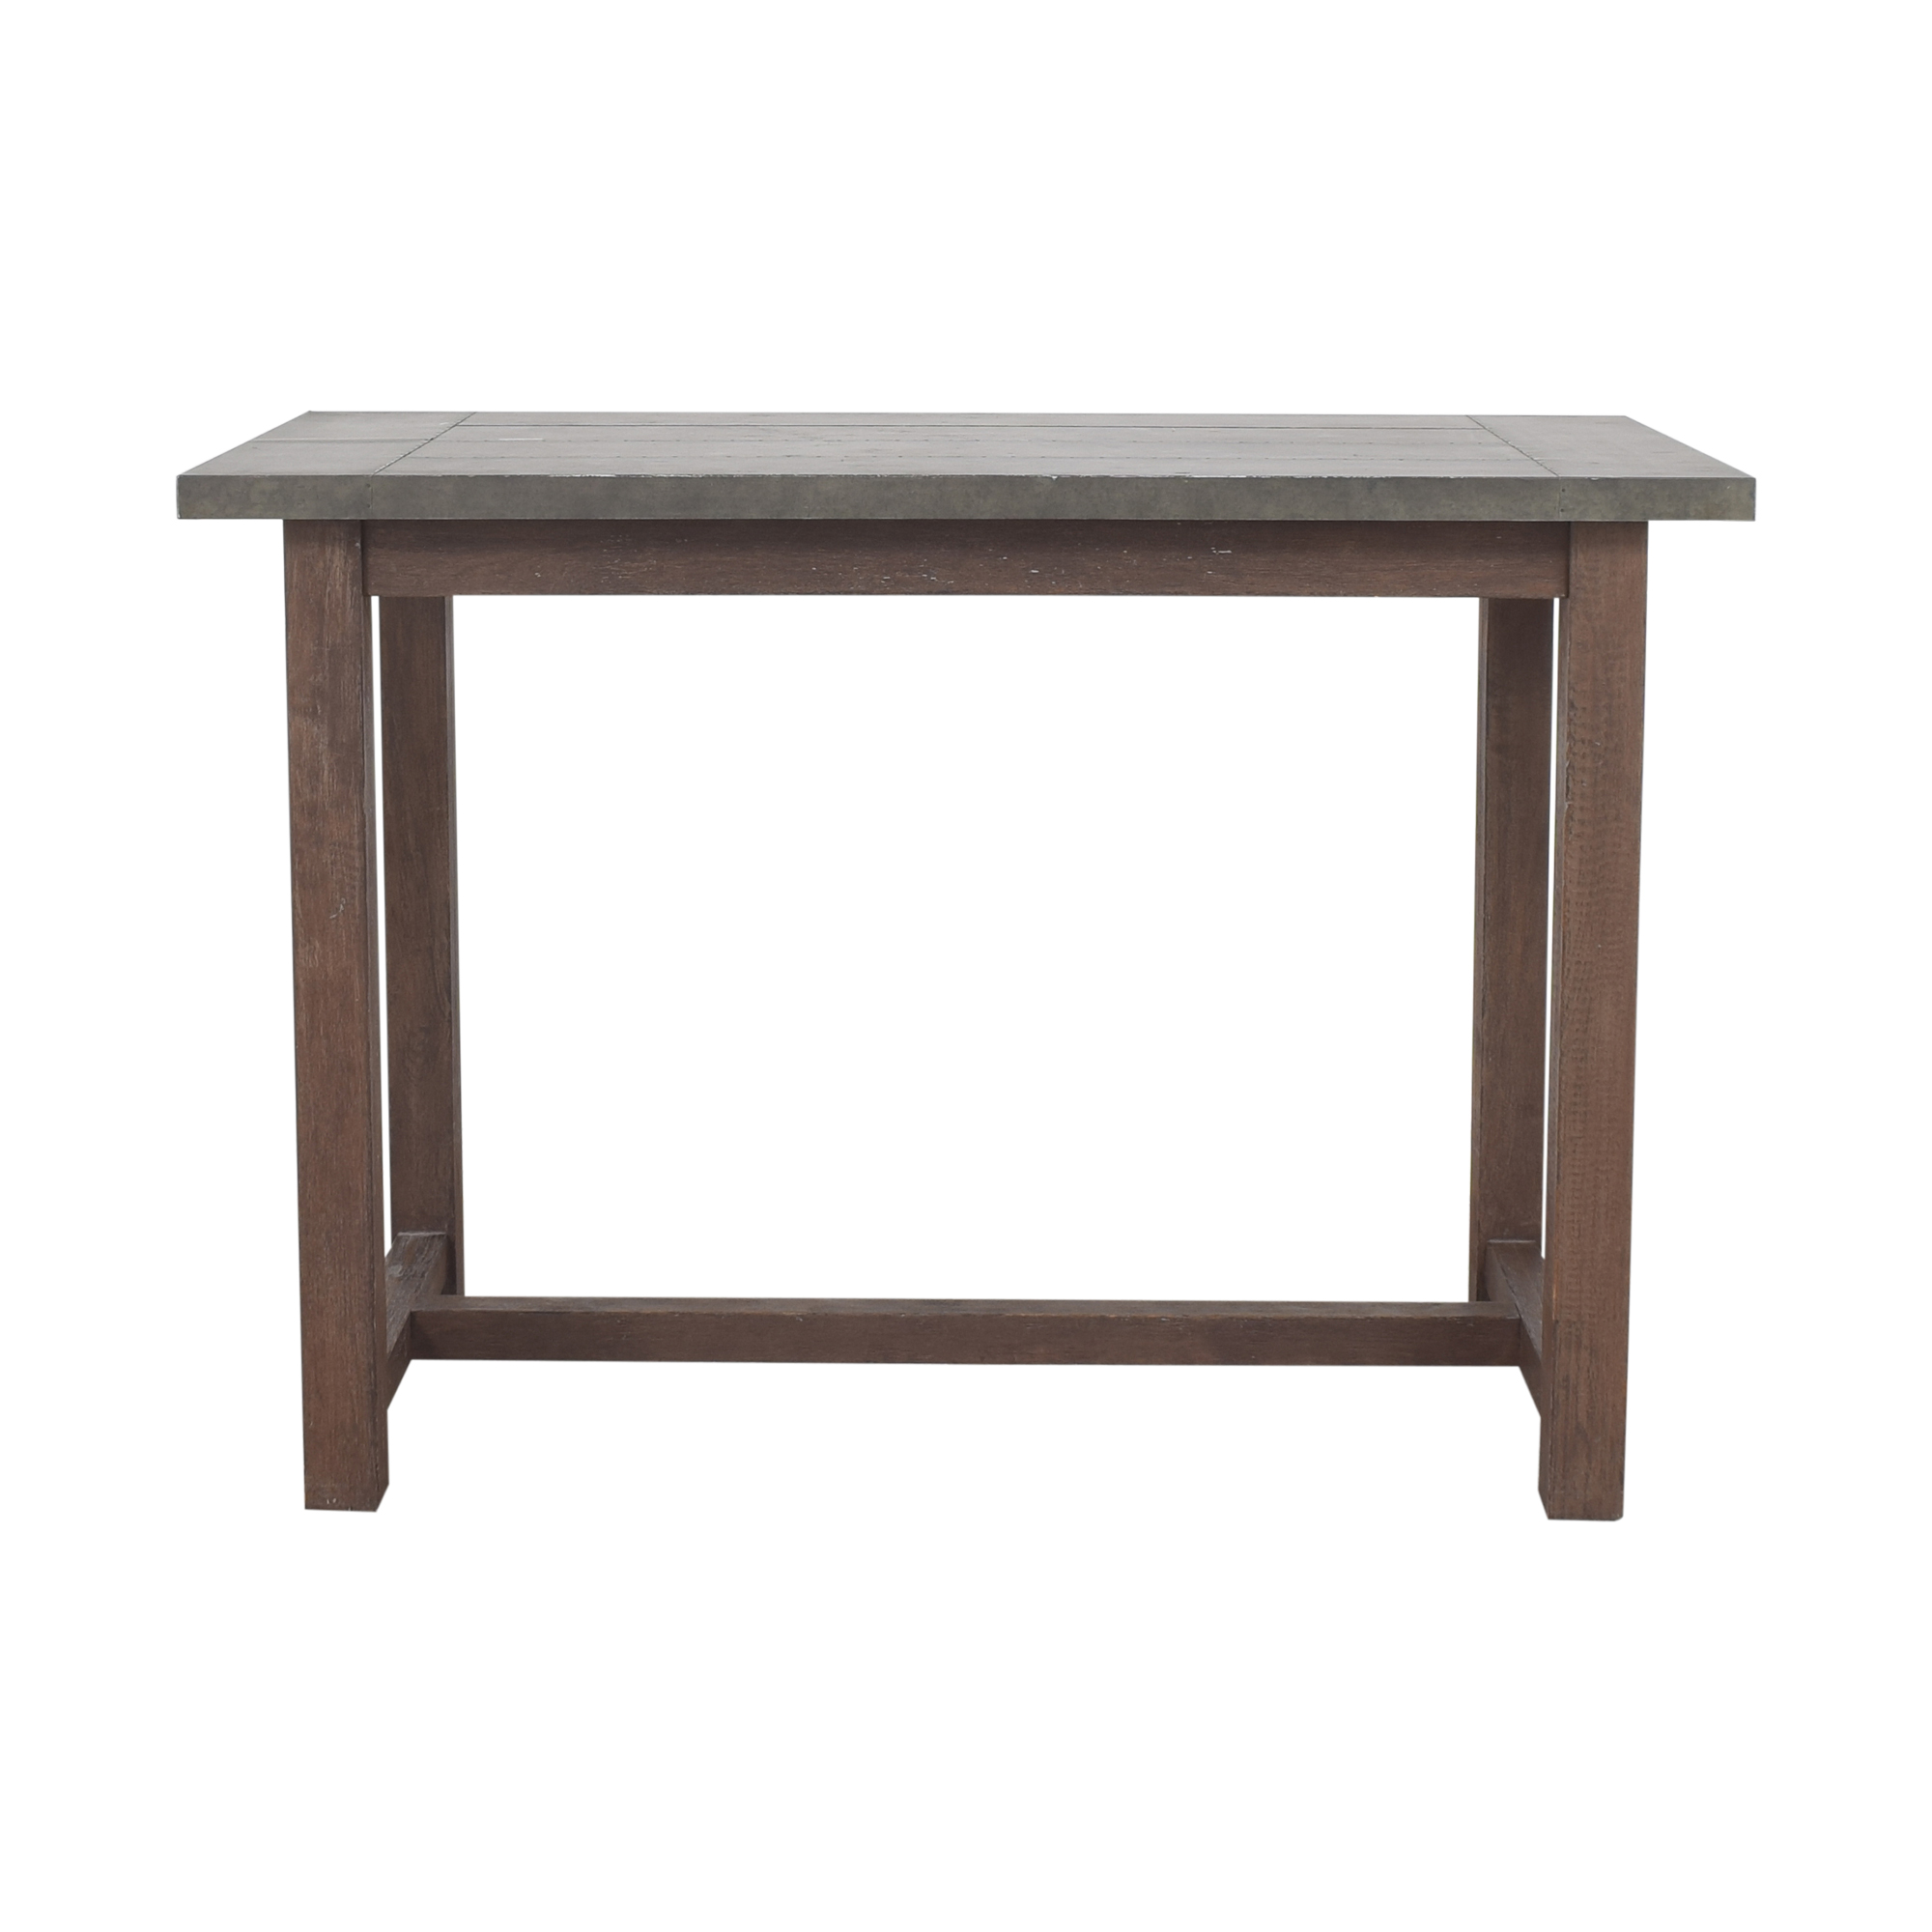 Crate & Barrel Crate & Barrel District High Dining Table for sale